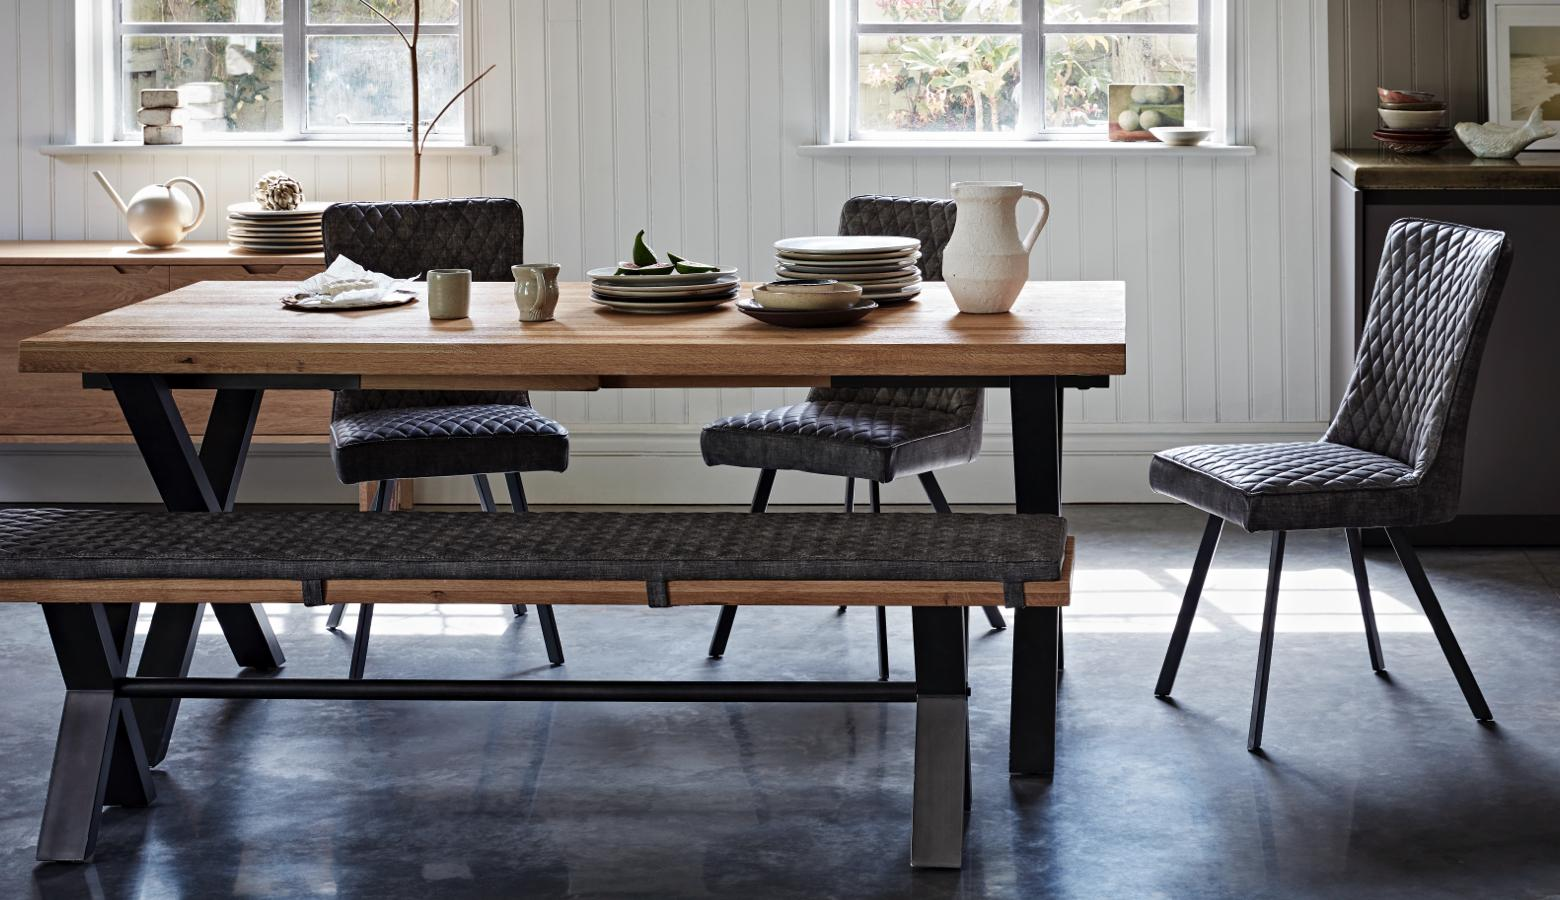 Lifestyle Dining   The Home of Inspiration   Furniture Village